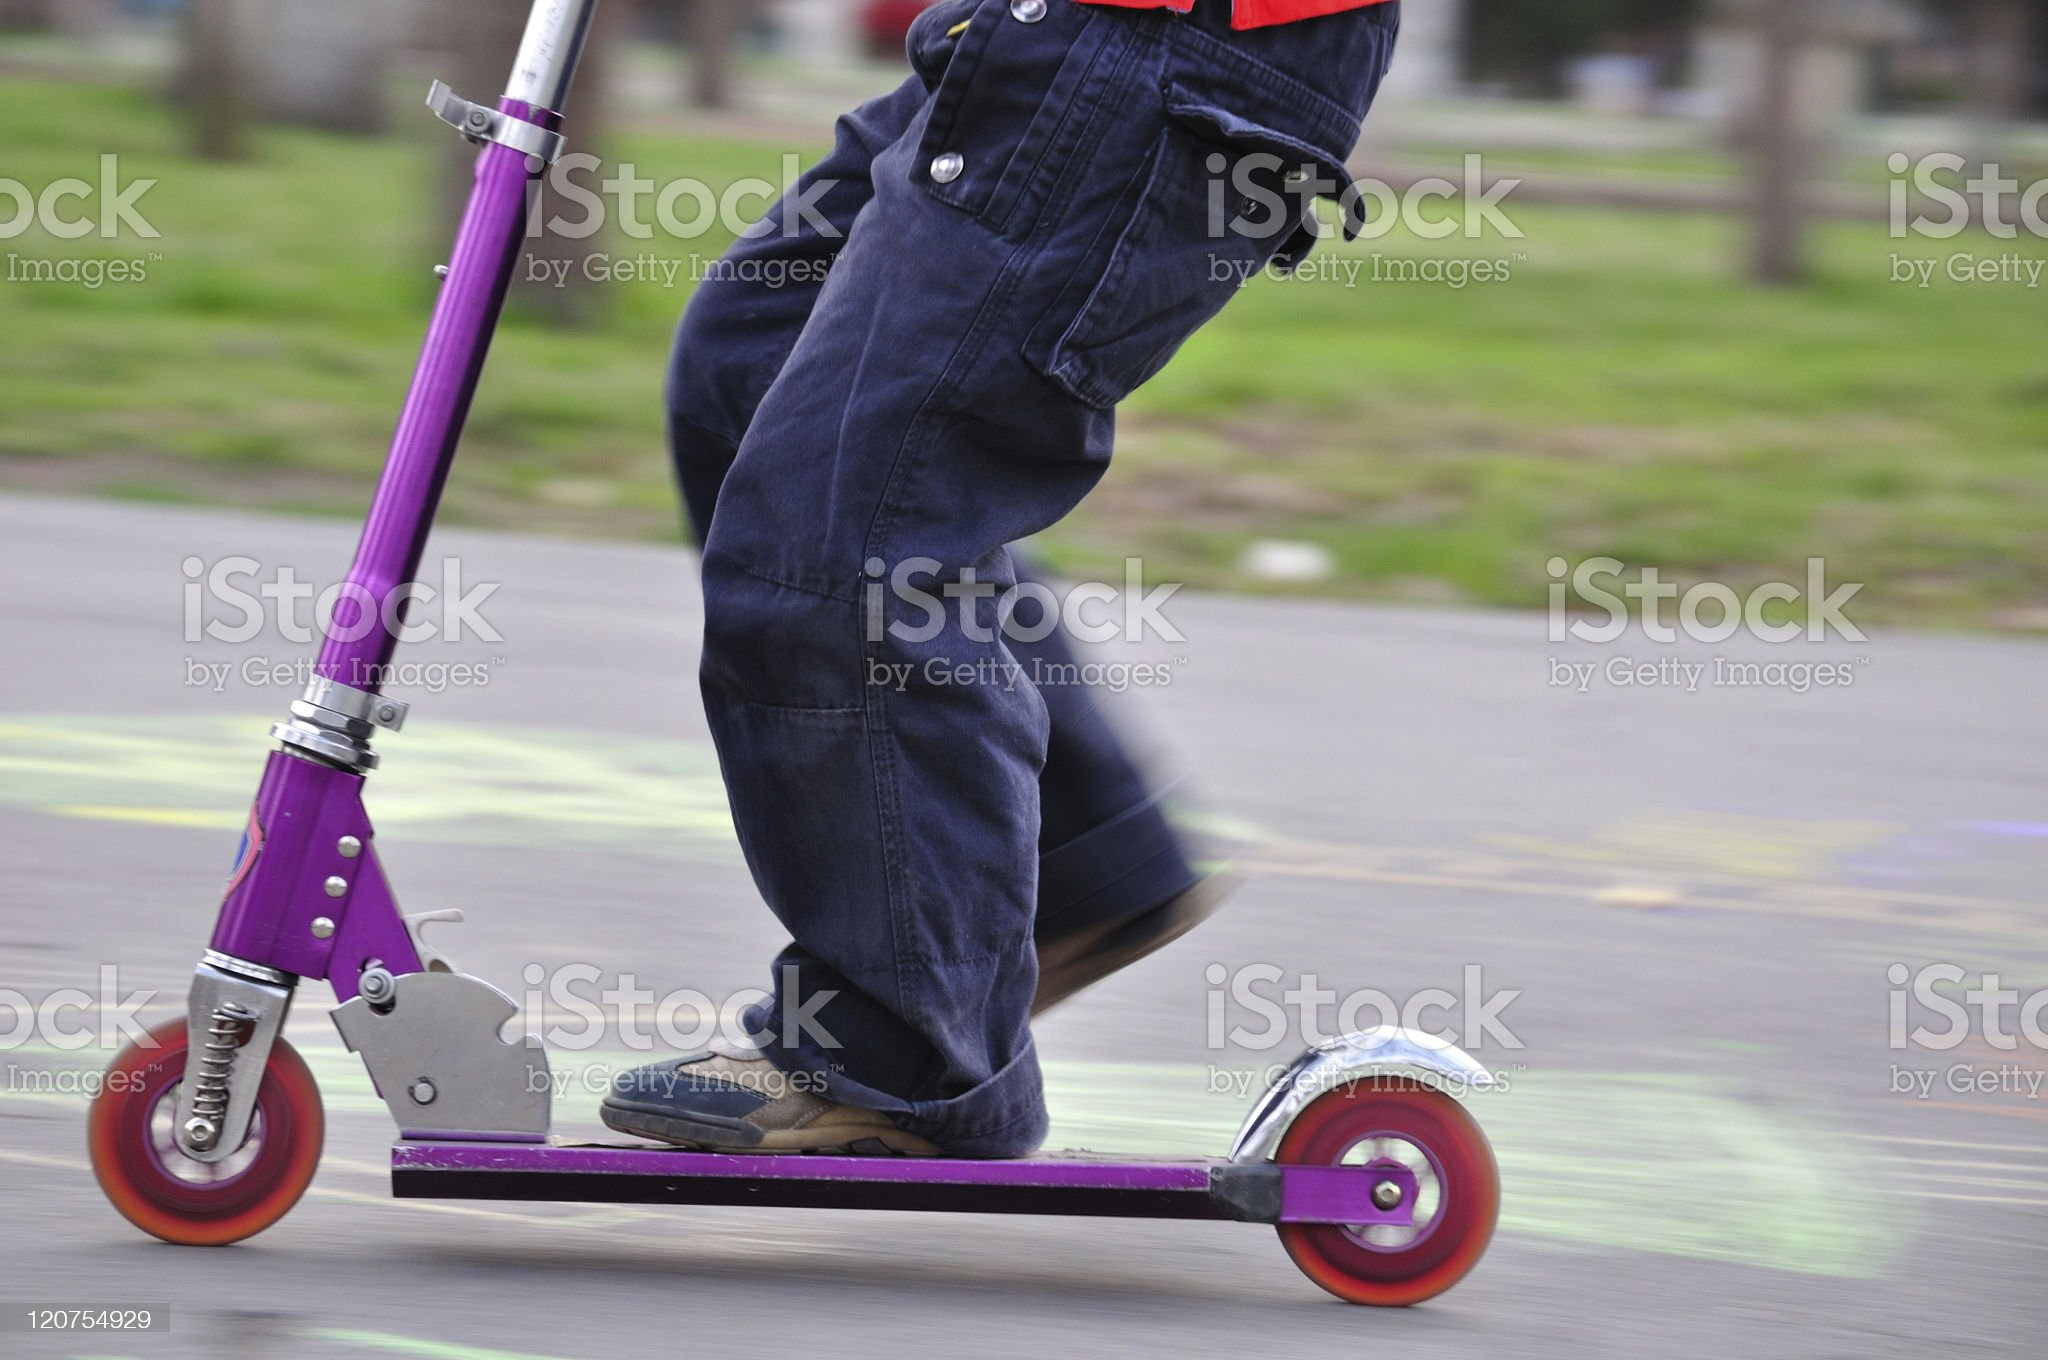 Scooter in motion royalty-free stock photo